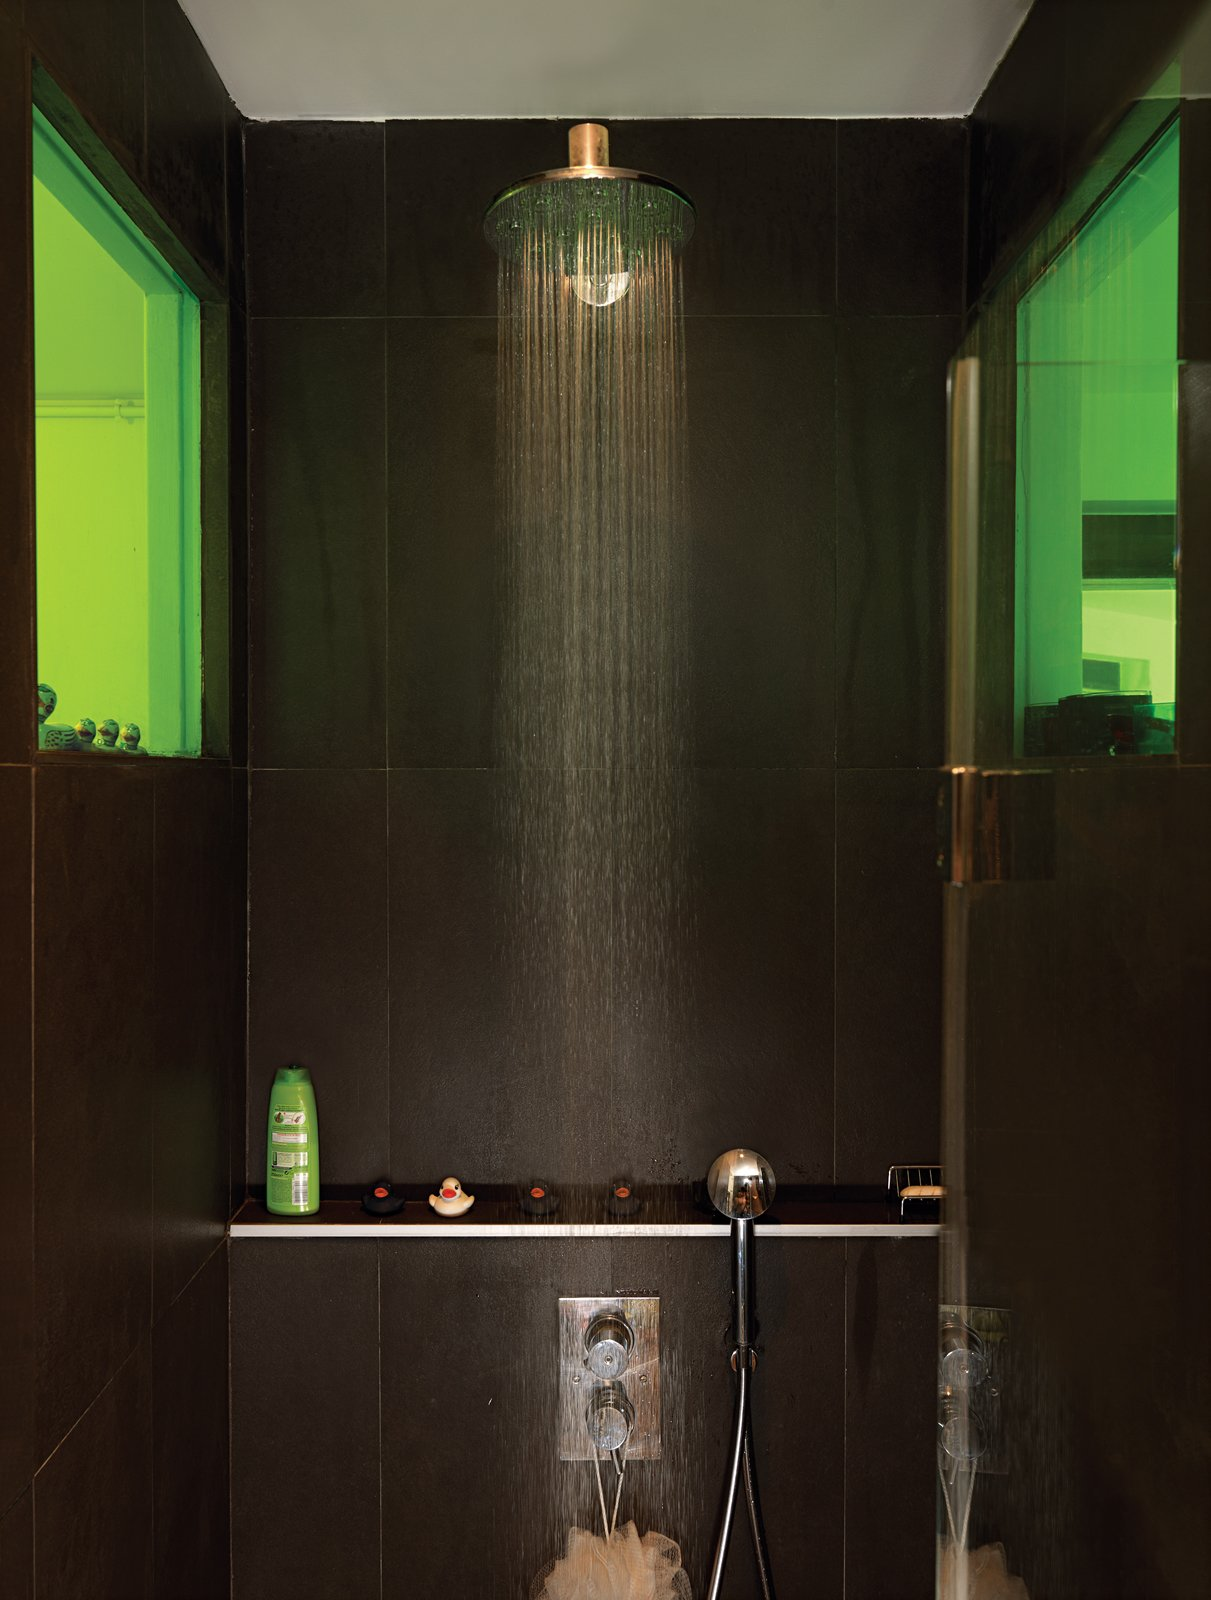 To create a sense of visual connection, Vinciguerra and Santiard set a colored window between the two rooms. They spent days making sure that the green transparency would meld nicely with the shade of green on the kitchen shelves.  Photo 4 of 9 in 9 Unusual Modern Bathrooms from Shelf Life